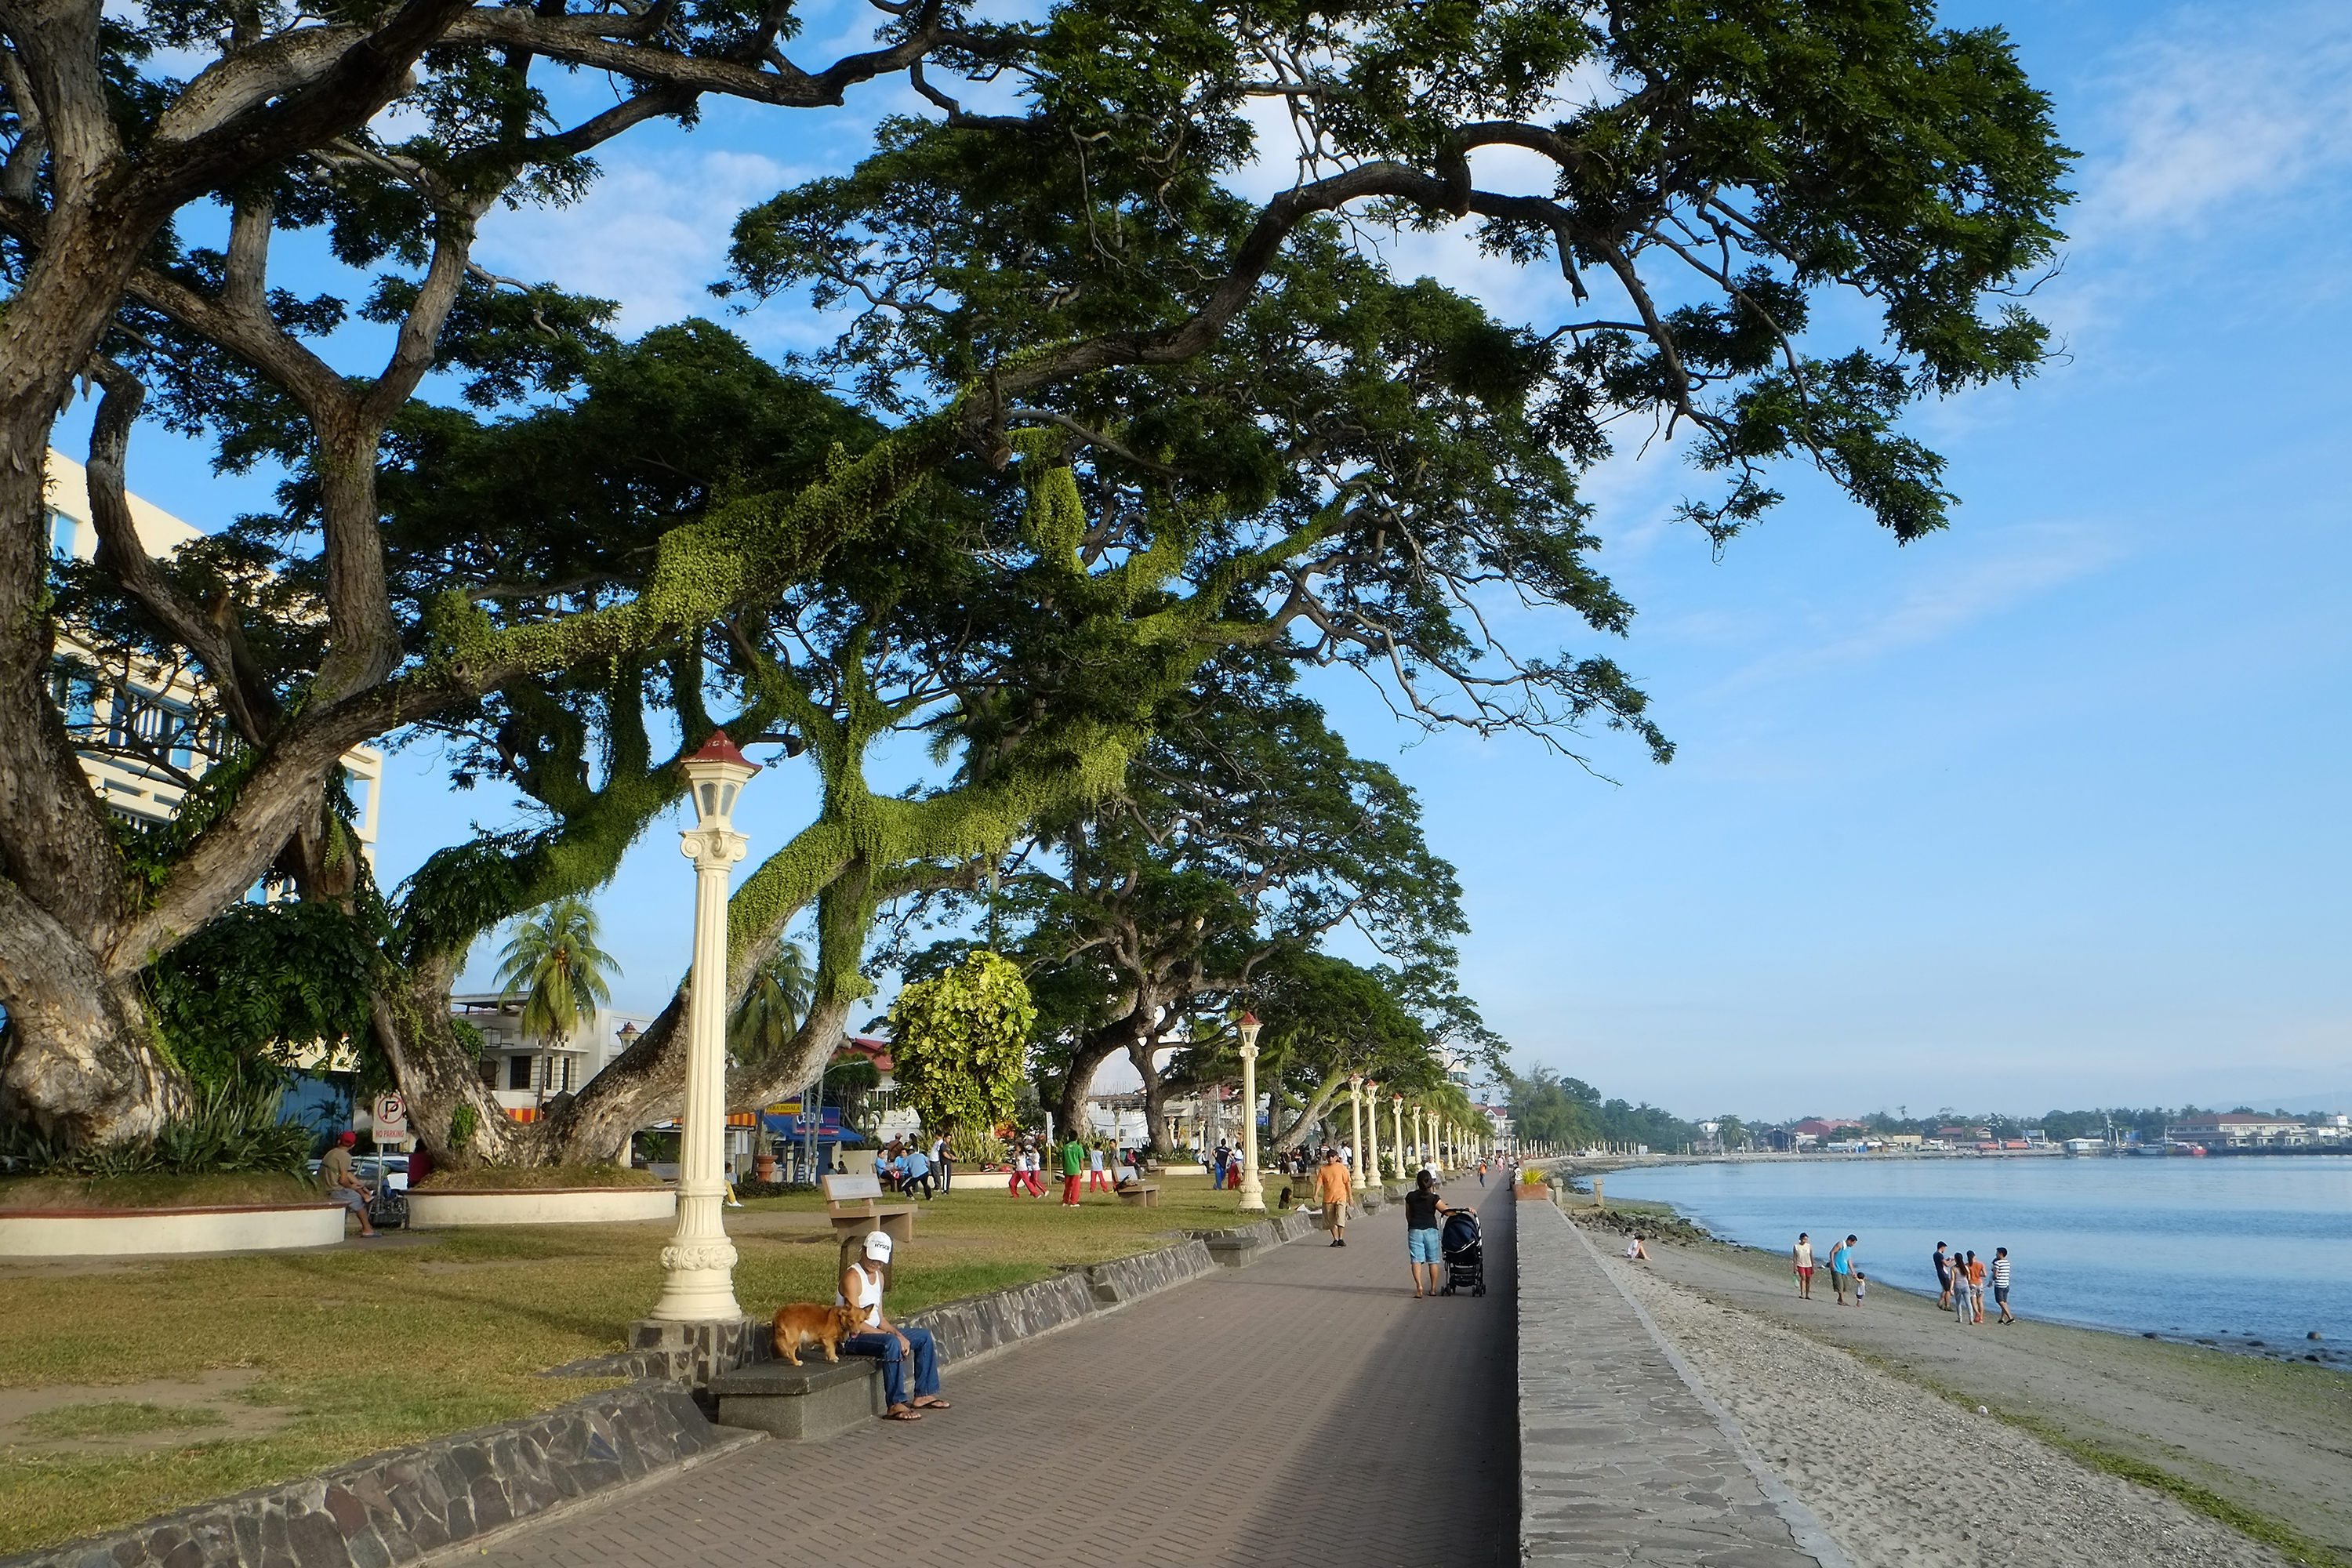 People relaxing in the benches of Rizal Boulevard in Dumaguete